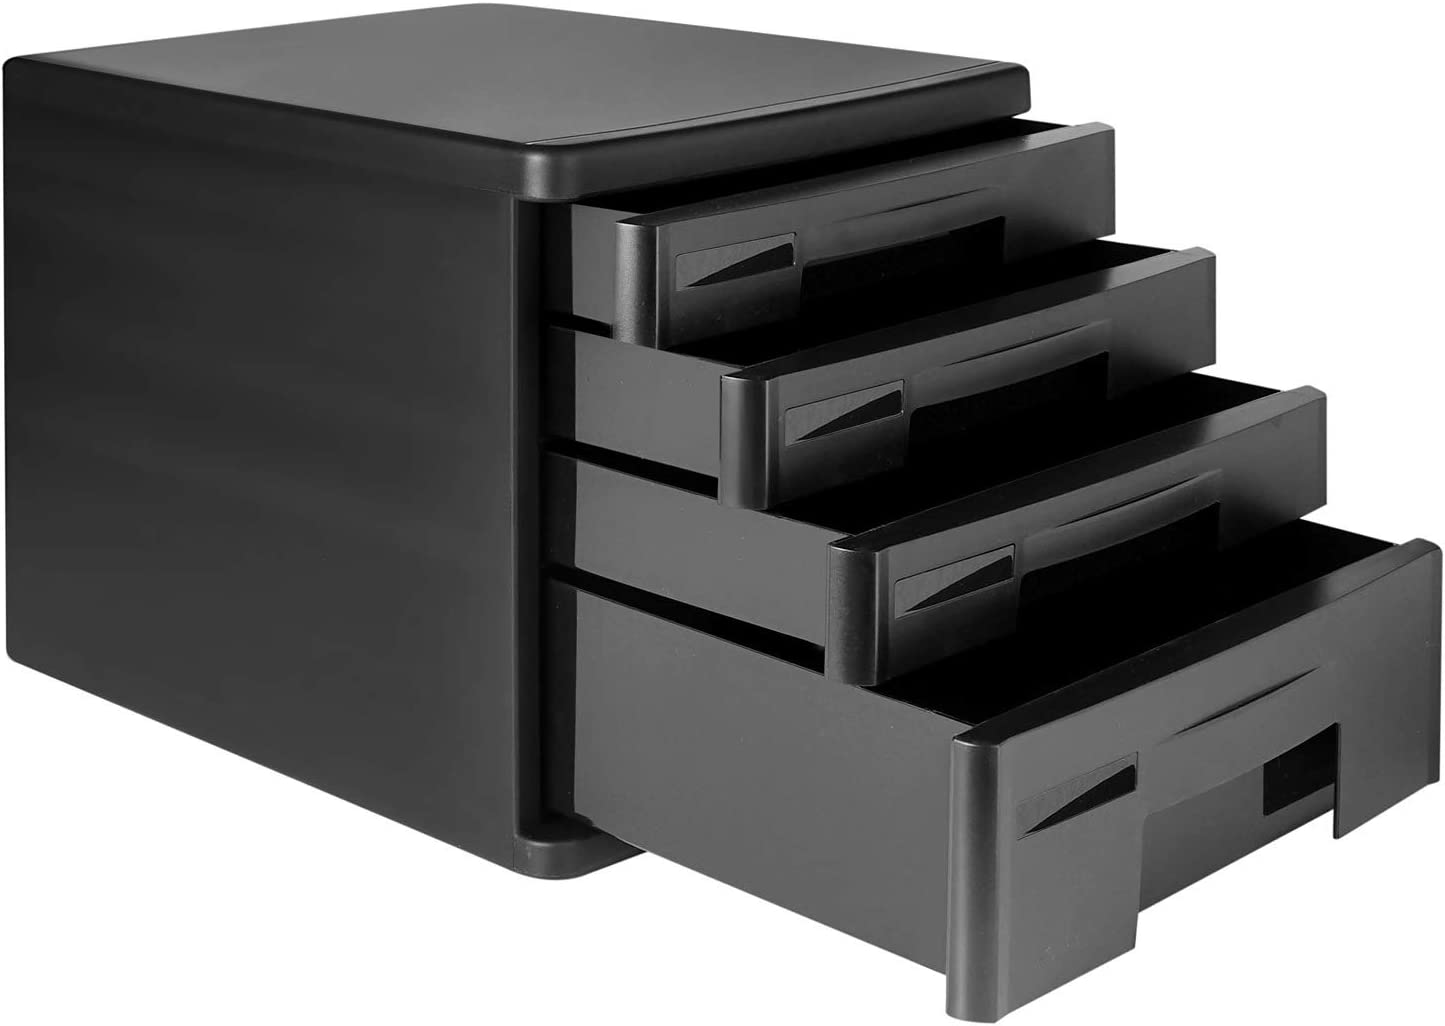 Office Desktop File Cabinet Organizer Drawer Home Office Suppliers Desktop File Documents Storage Box with 4-Tier Drawers Ultimate Desk Organization Cabinet for Document Letter and Tools